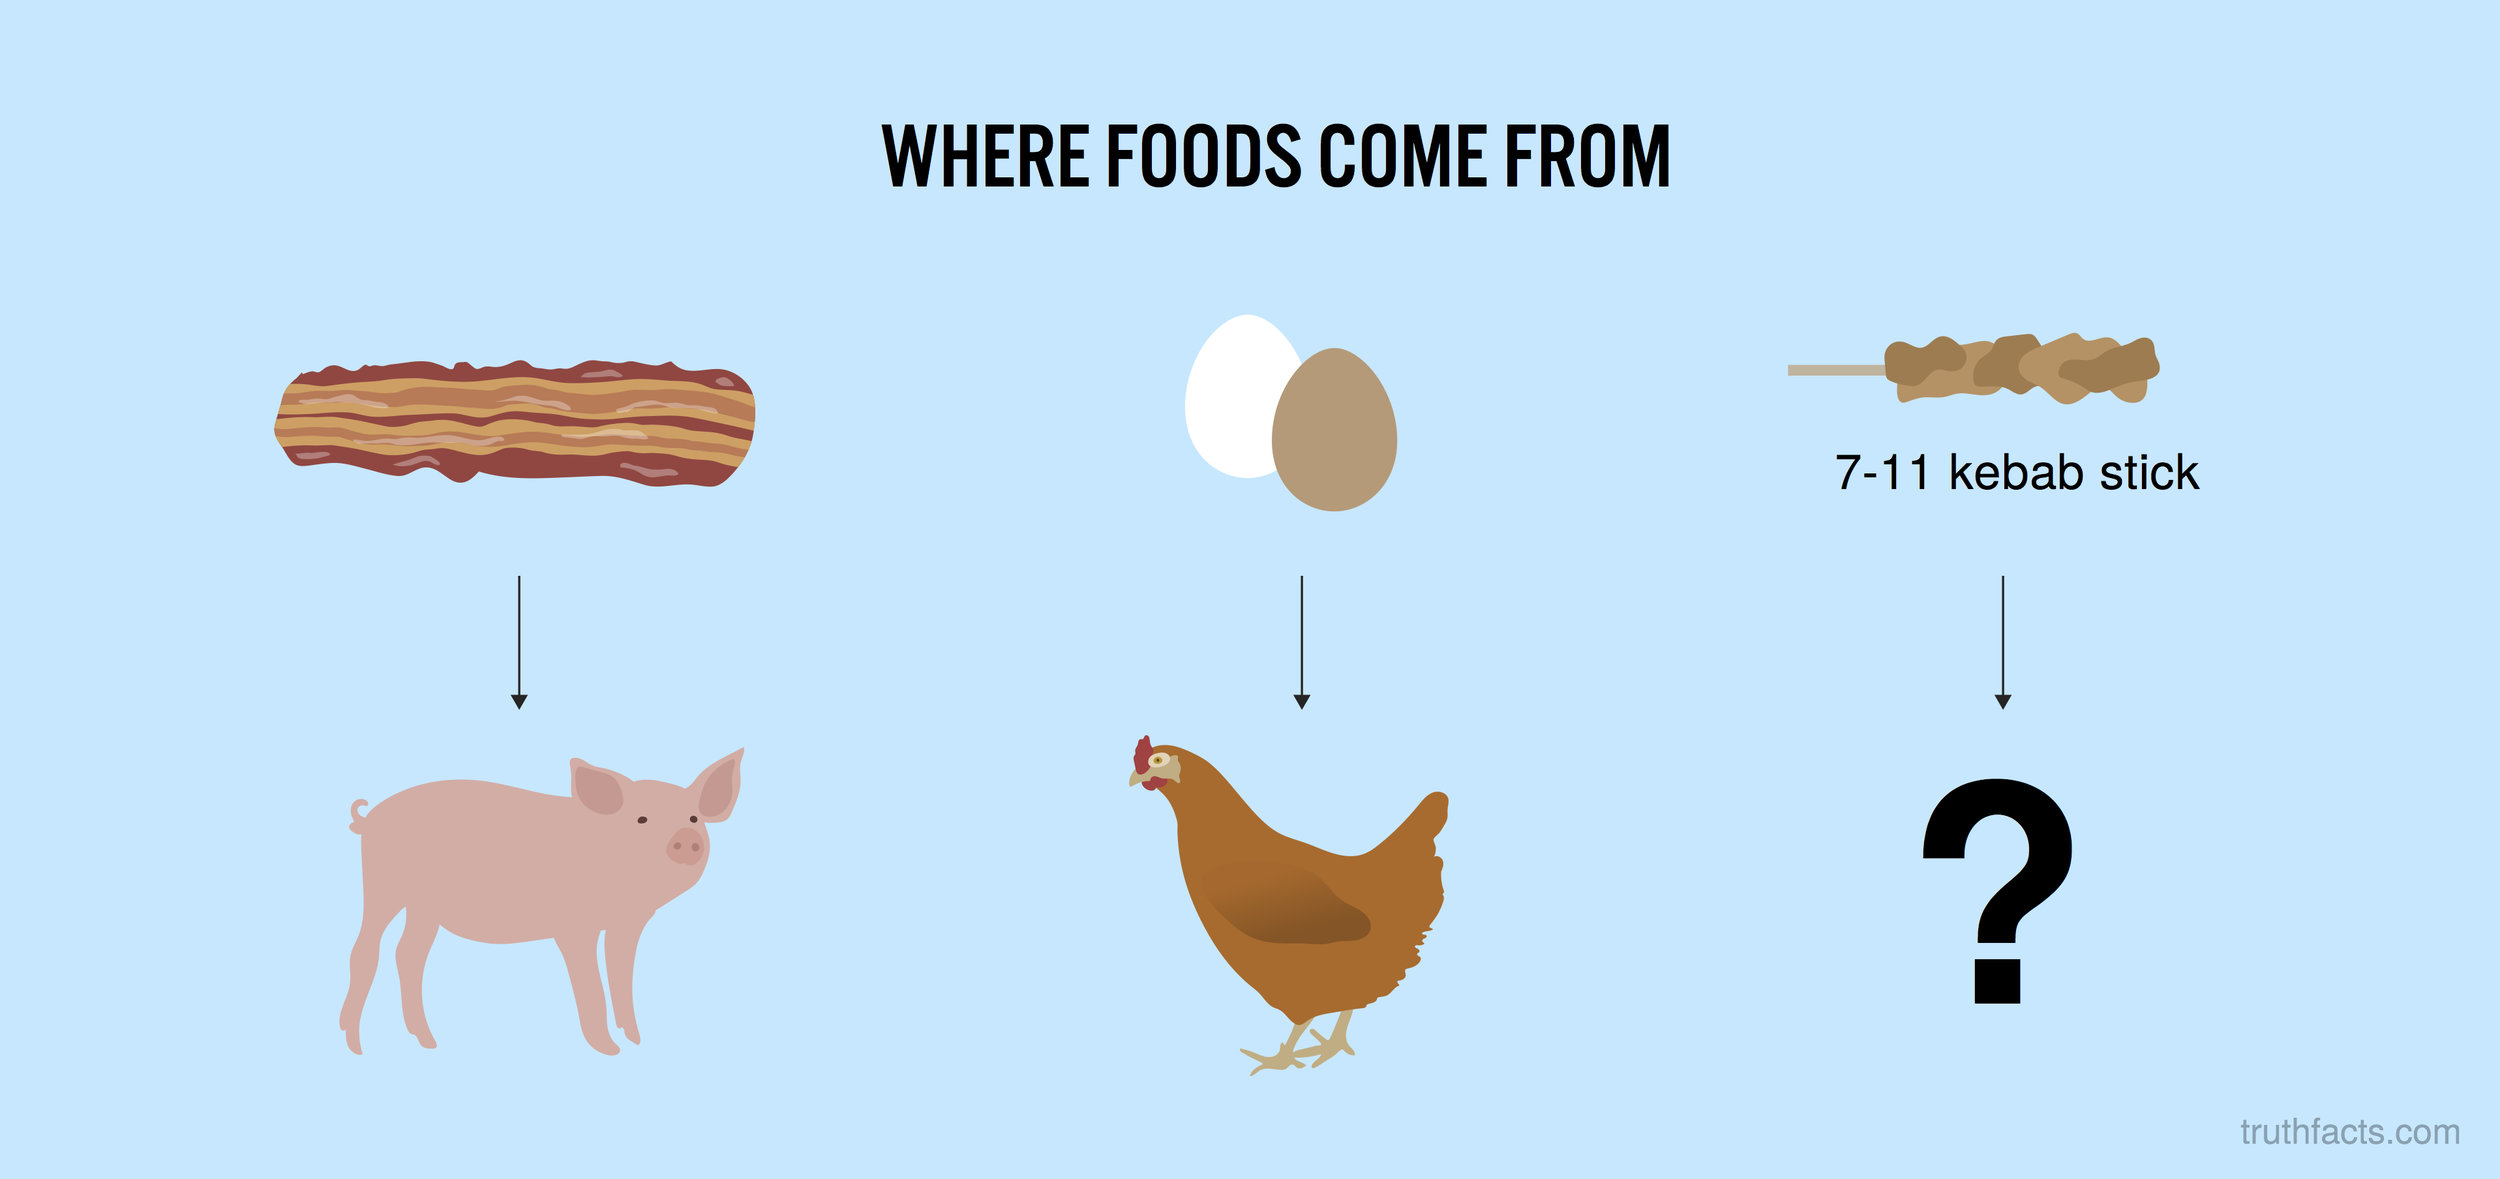 Where foods come from